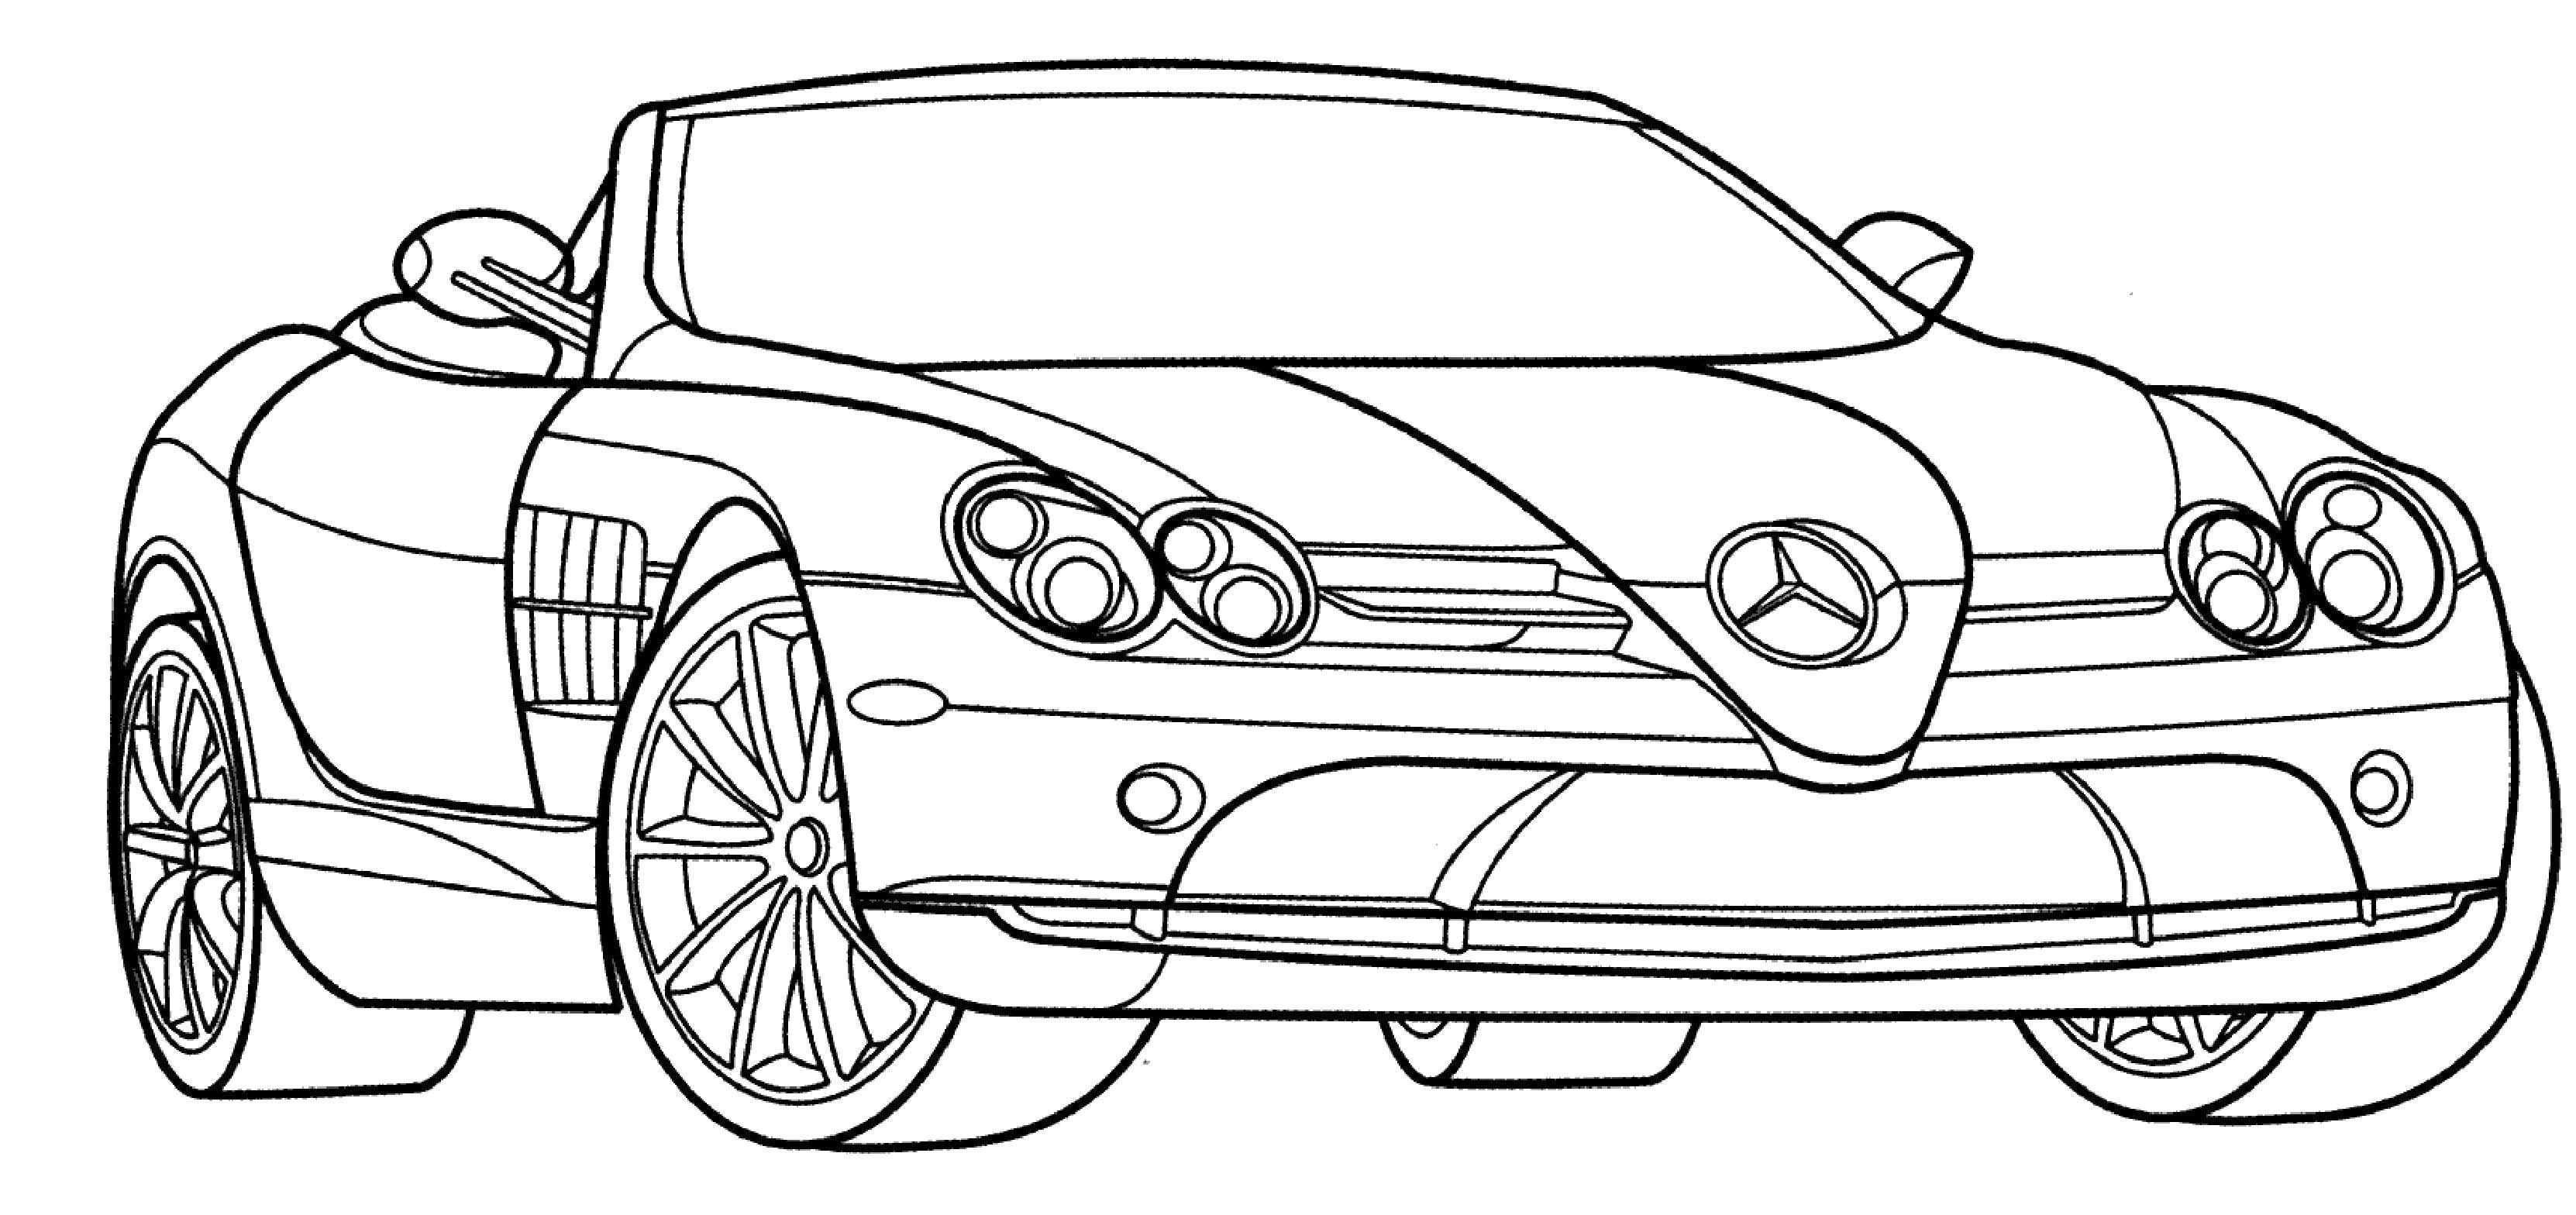 Sports Cars Coloring Pages - Bing images | Cars coloring ...